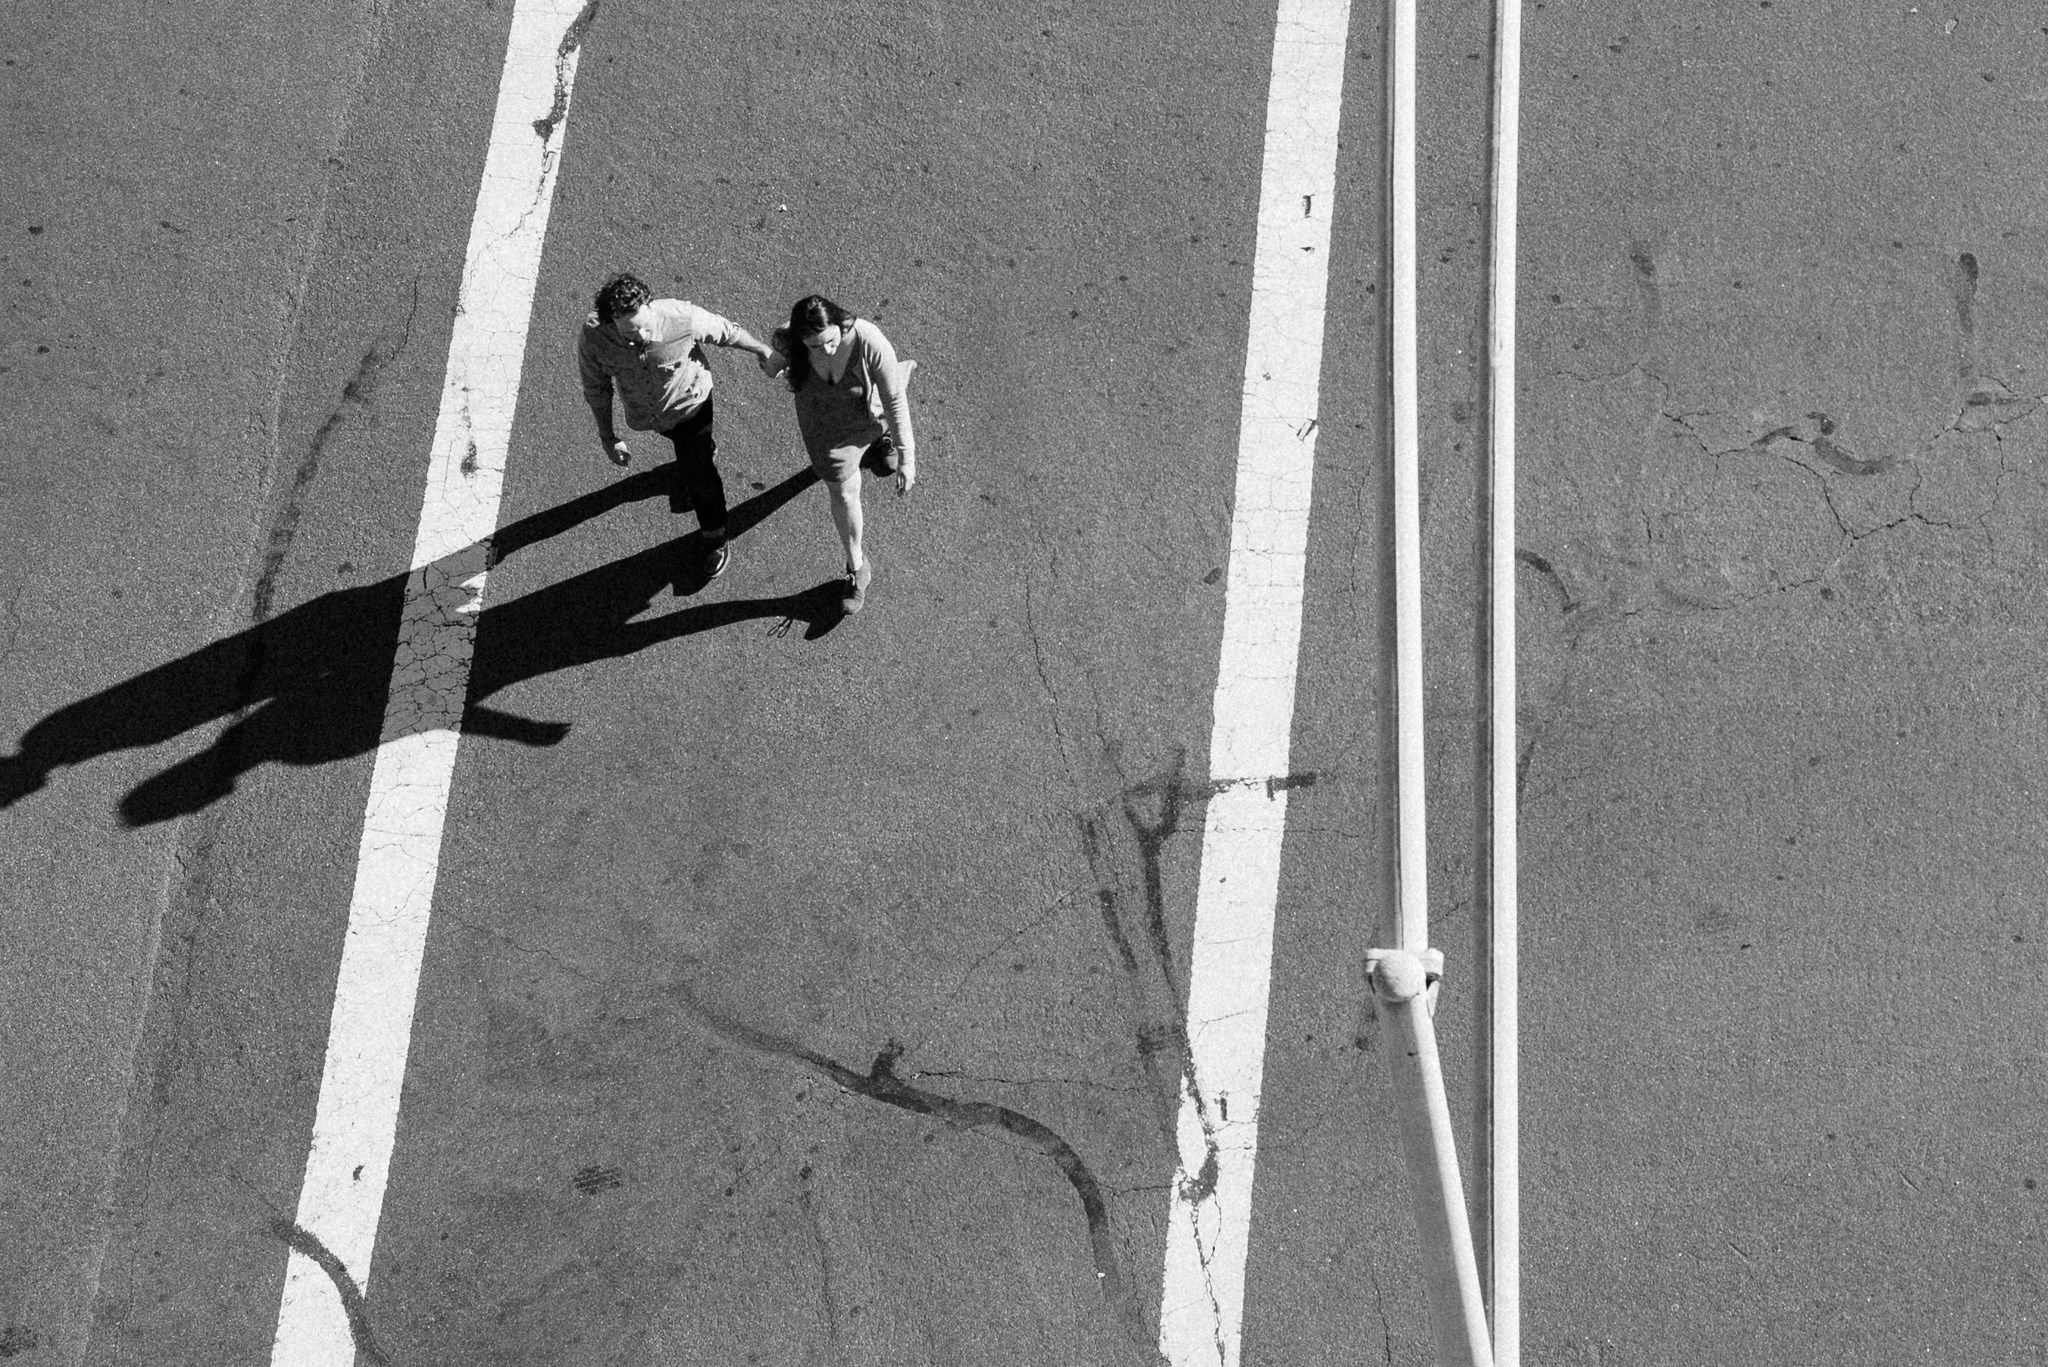 An engaged couple crosses an intersection in San Diego's North Park Neighborhood.